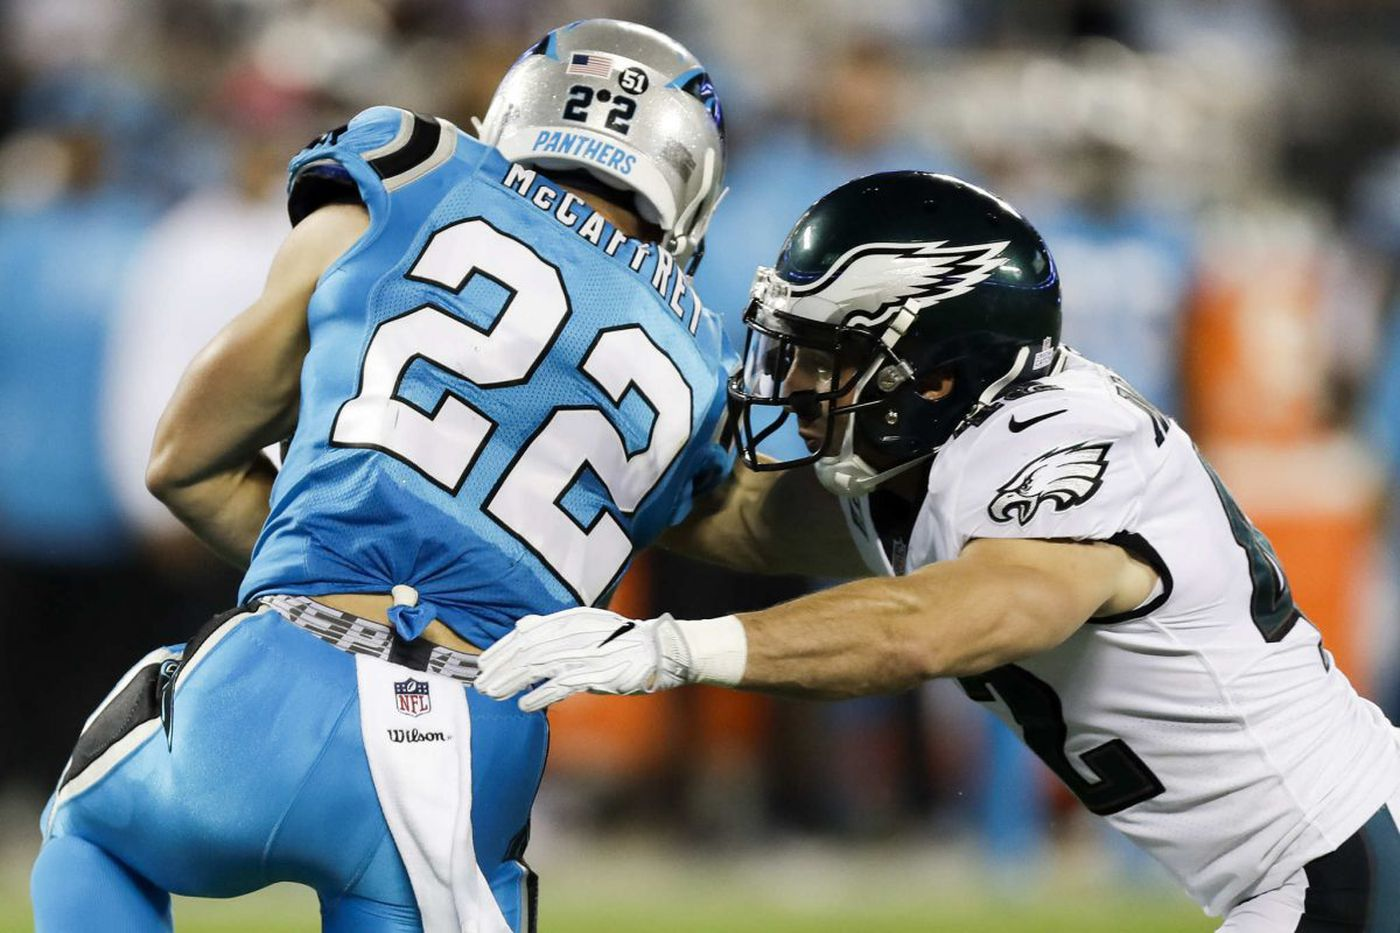 Eagles place Chris Maragos on injured reserve, promote Nate Gerry from practice squad